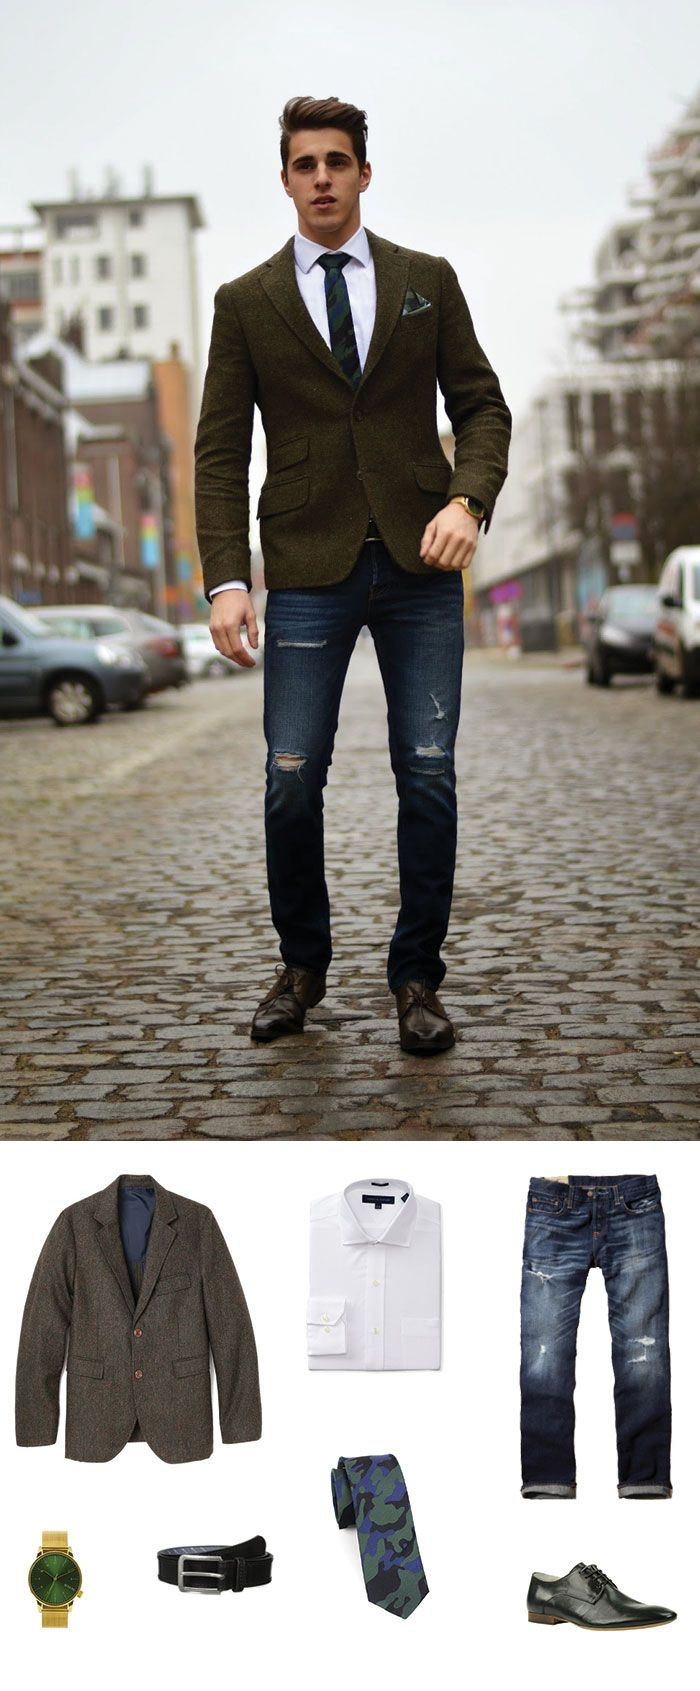 Camo is everywhere in menswear. Get this dapper look of a camo skinny tie, blazer and deconstructed jeans.